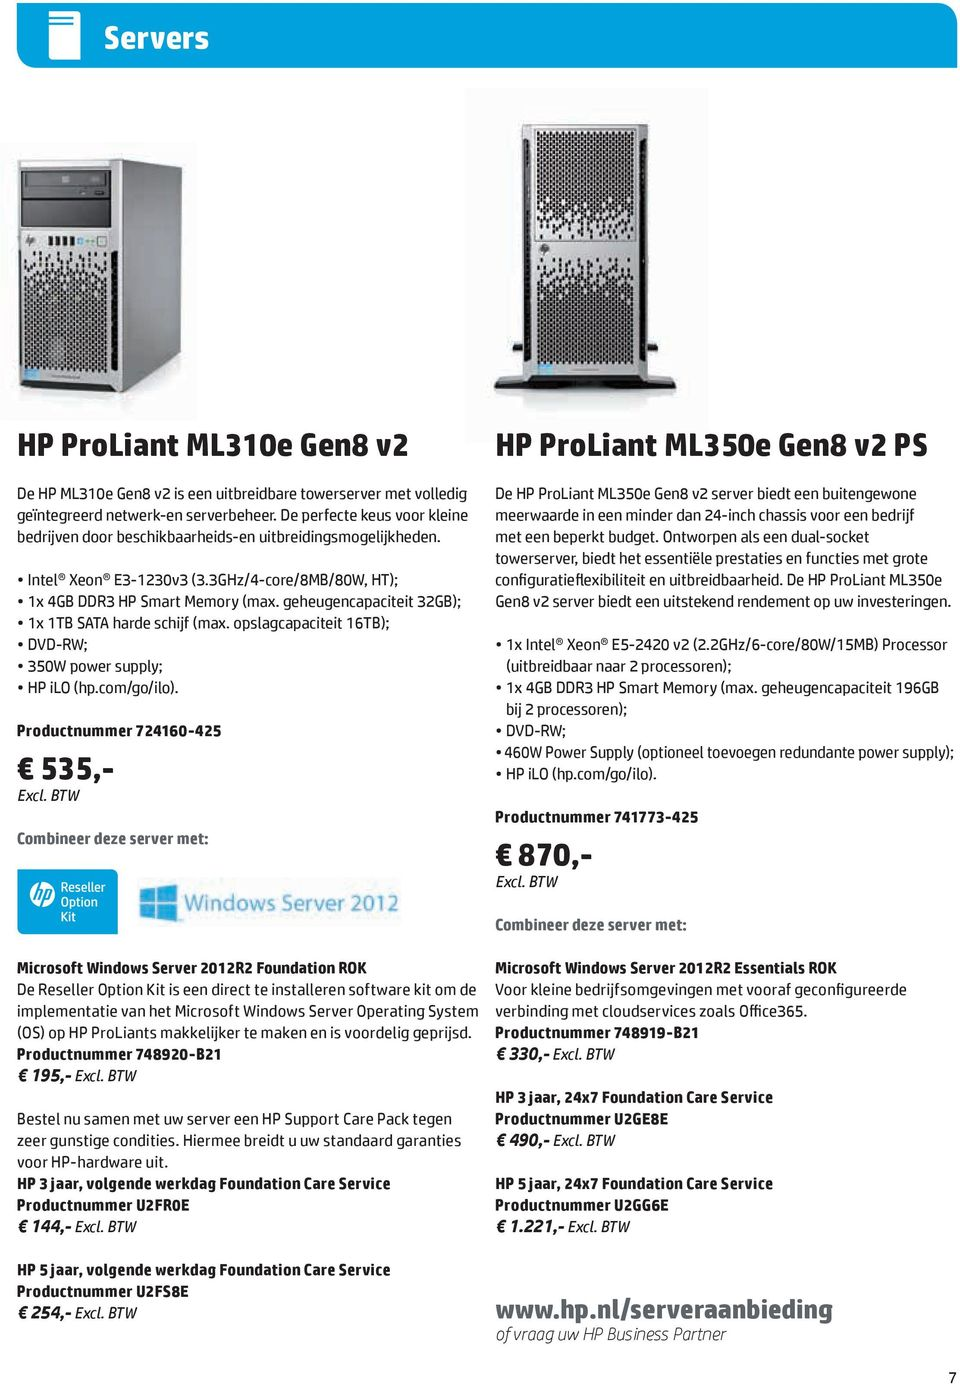 geheugencapaciteit 32GB); 1x 1TB SATA harde schijf (max. opslagcapaciteit 16TB); DVD-RW; 350W power supply; HP ilo (hp.com/go/ilo).